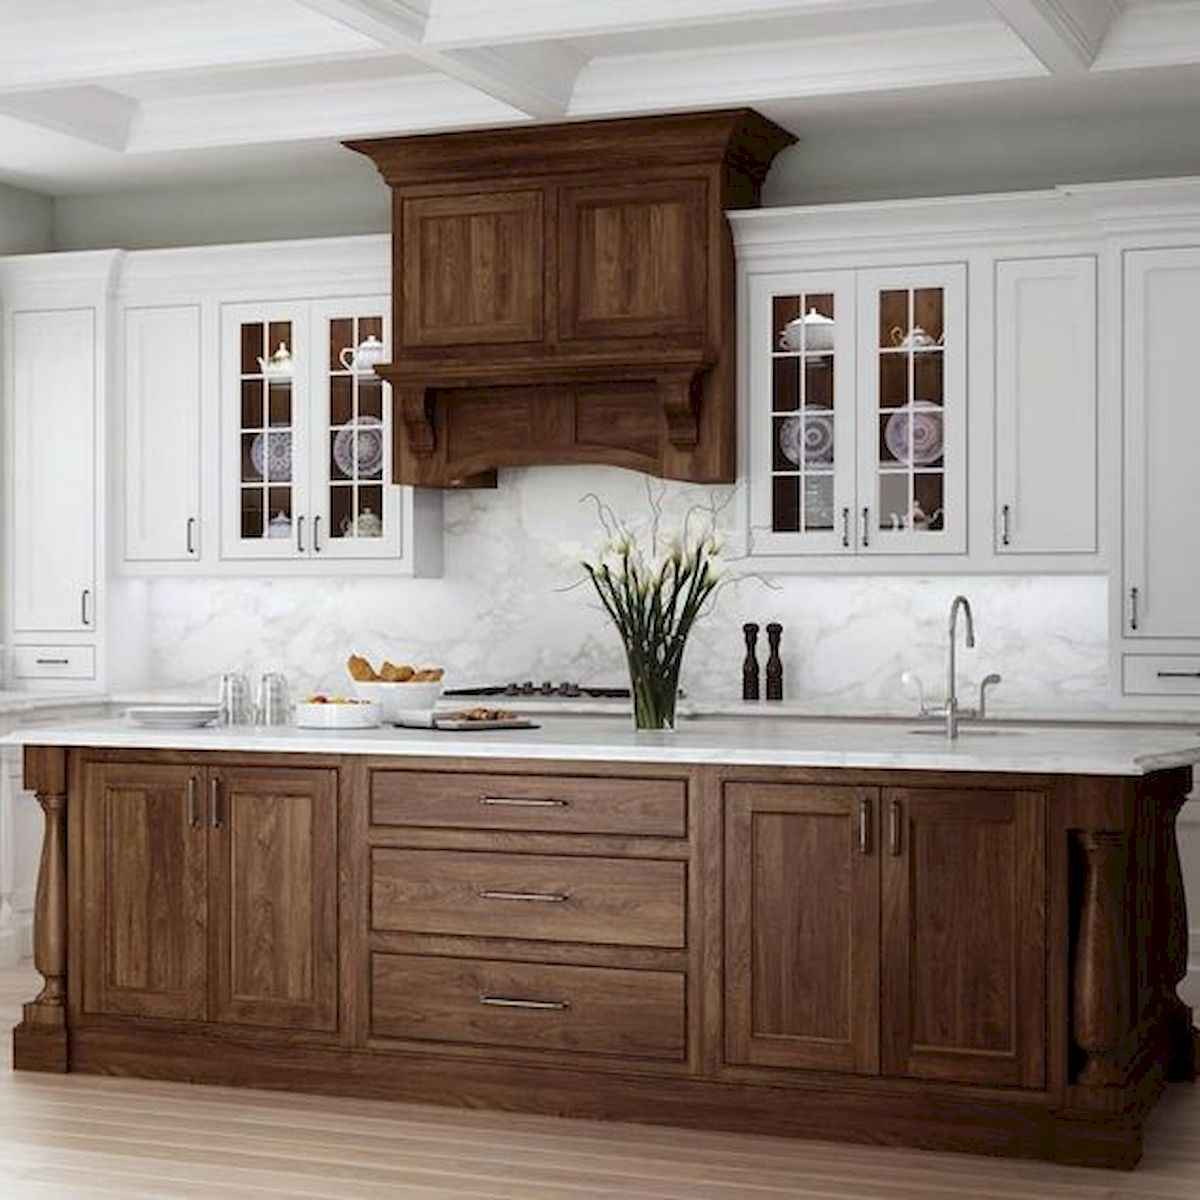 60 Lovely Painted Kitchen Cabinets Two Tone Design Ideas (6)